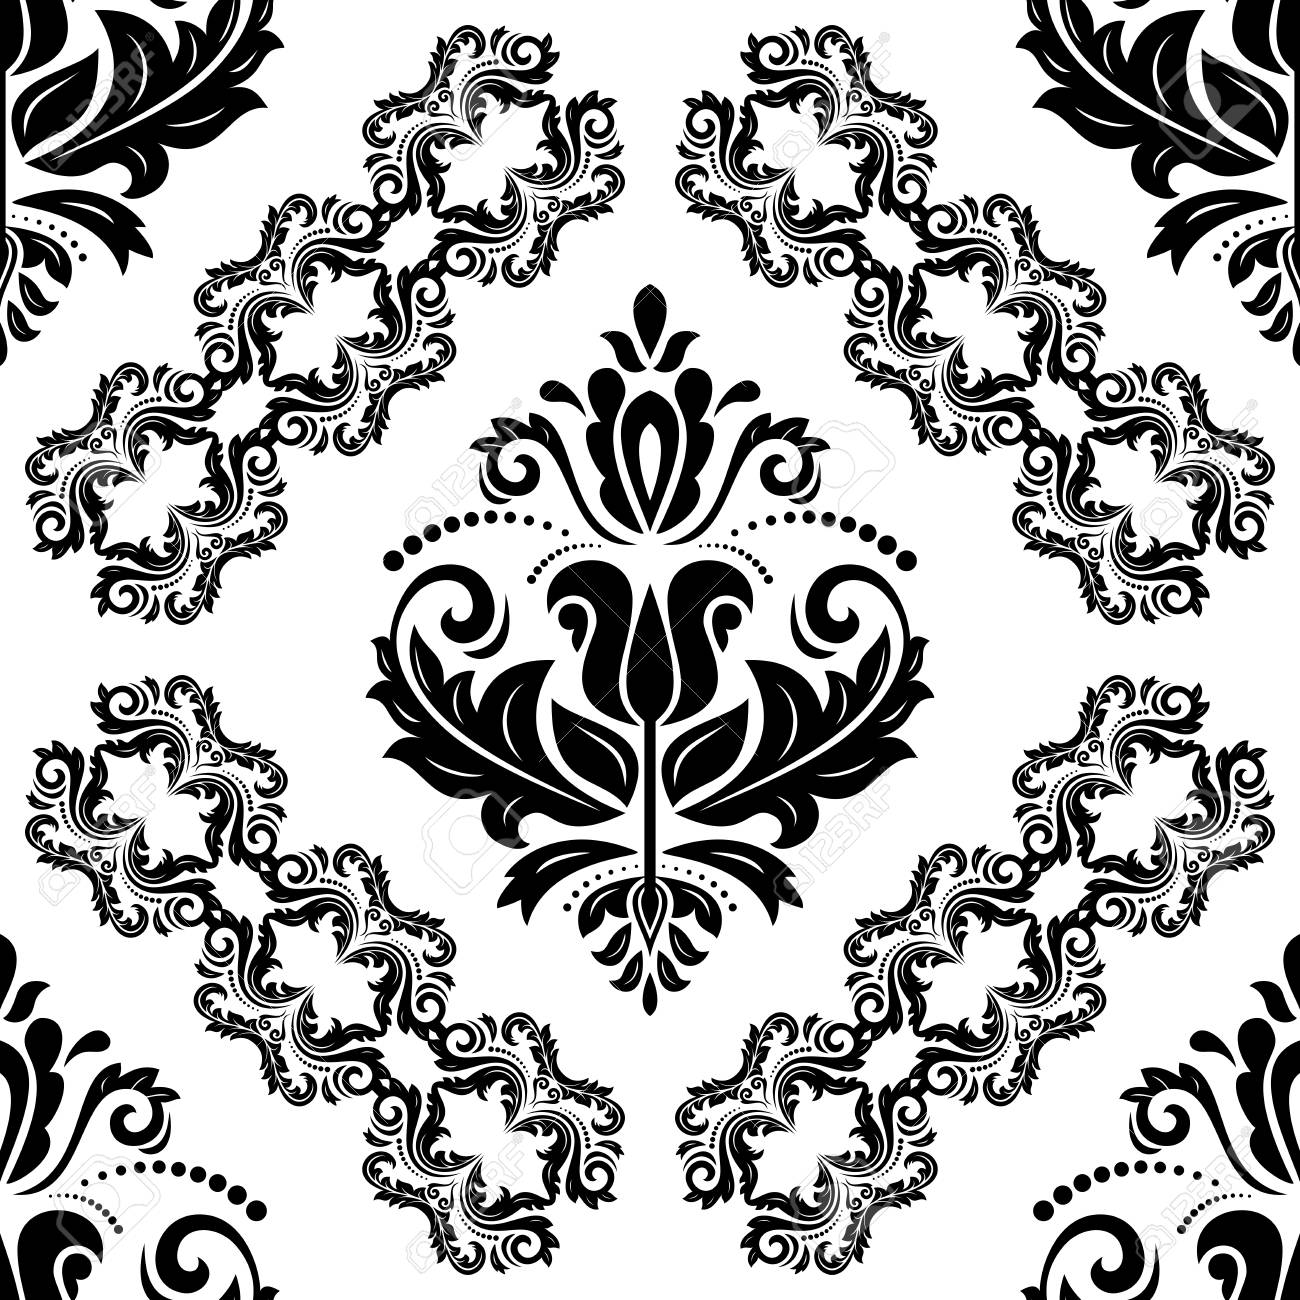 Oriental Classic Ornament Seamless Abstract Background Black And White Damask Wallpaper Stock Photo